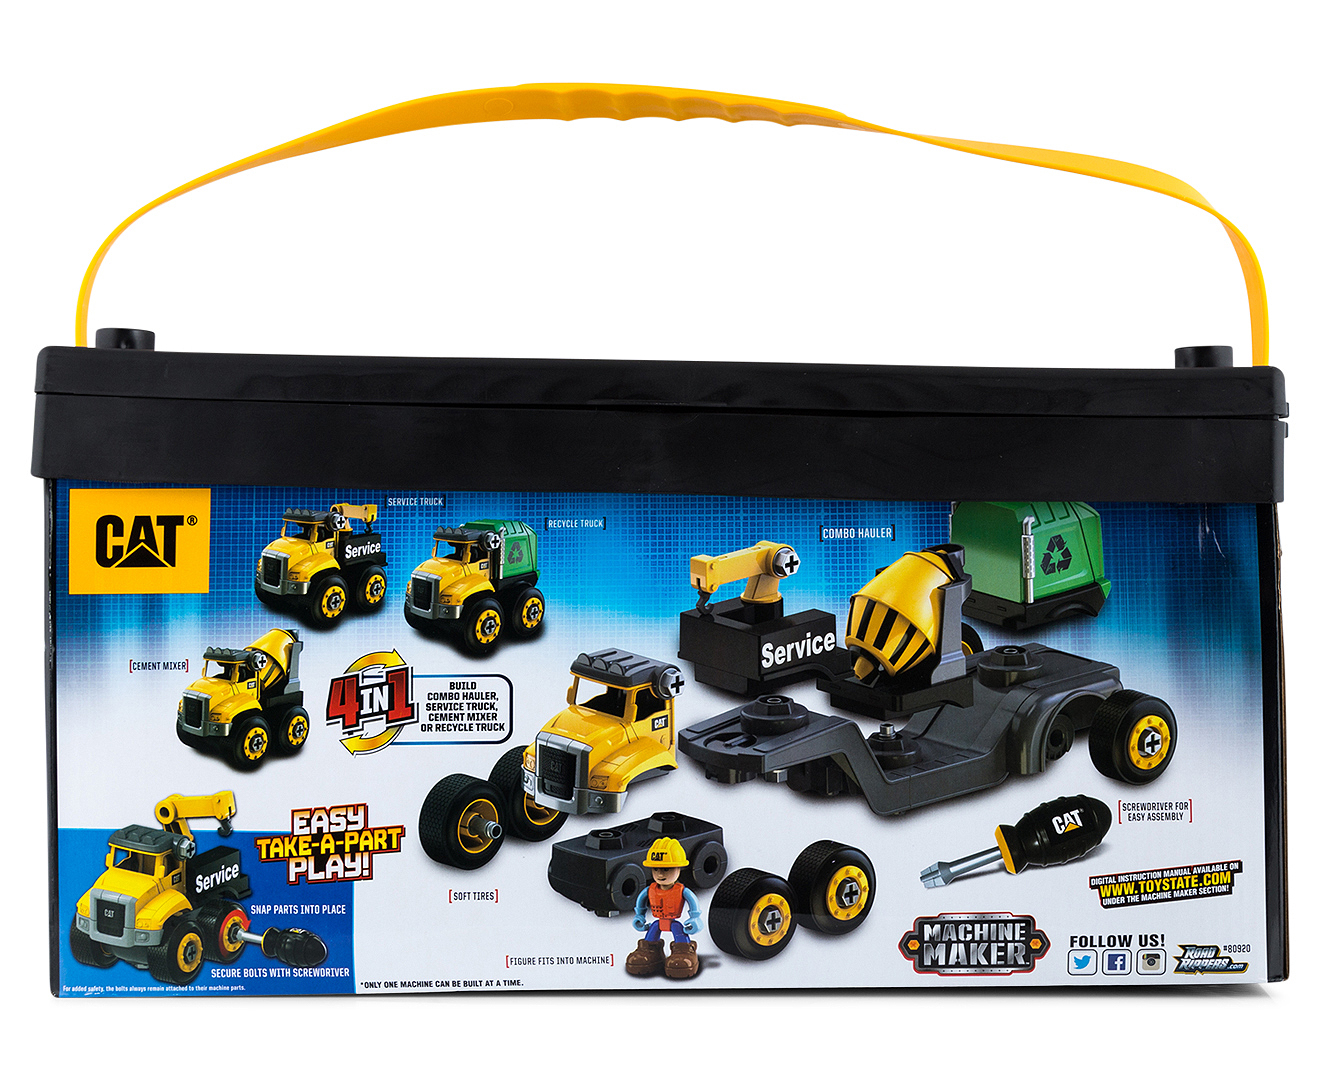 Cat Toy Truck With Screwdriver